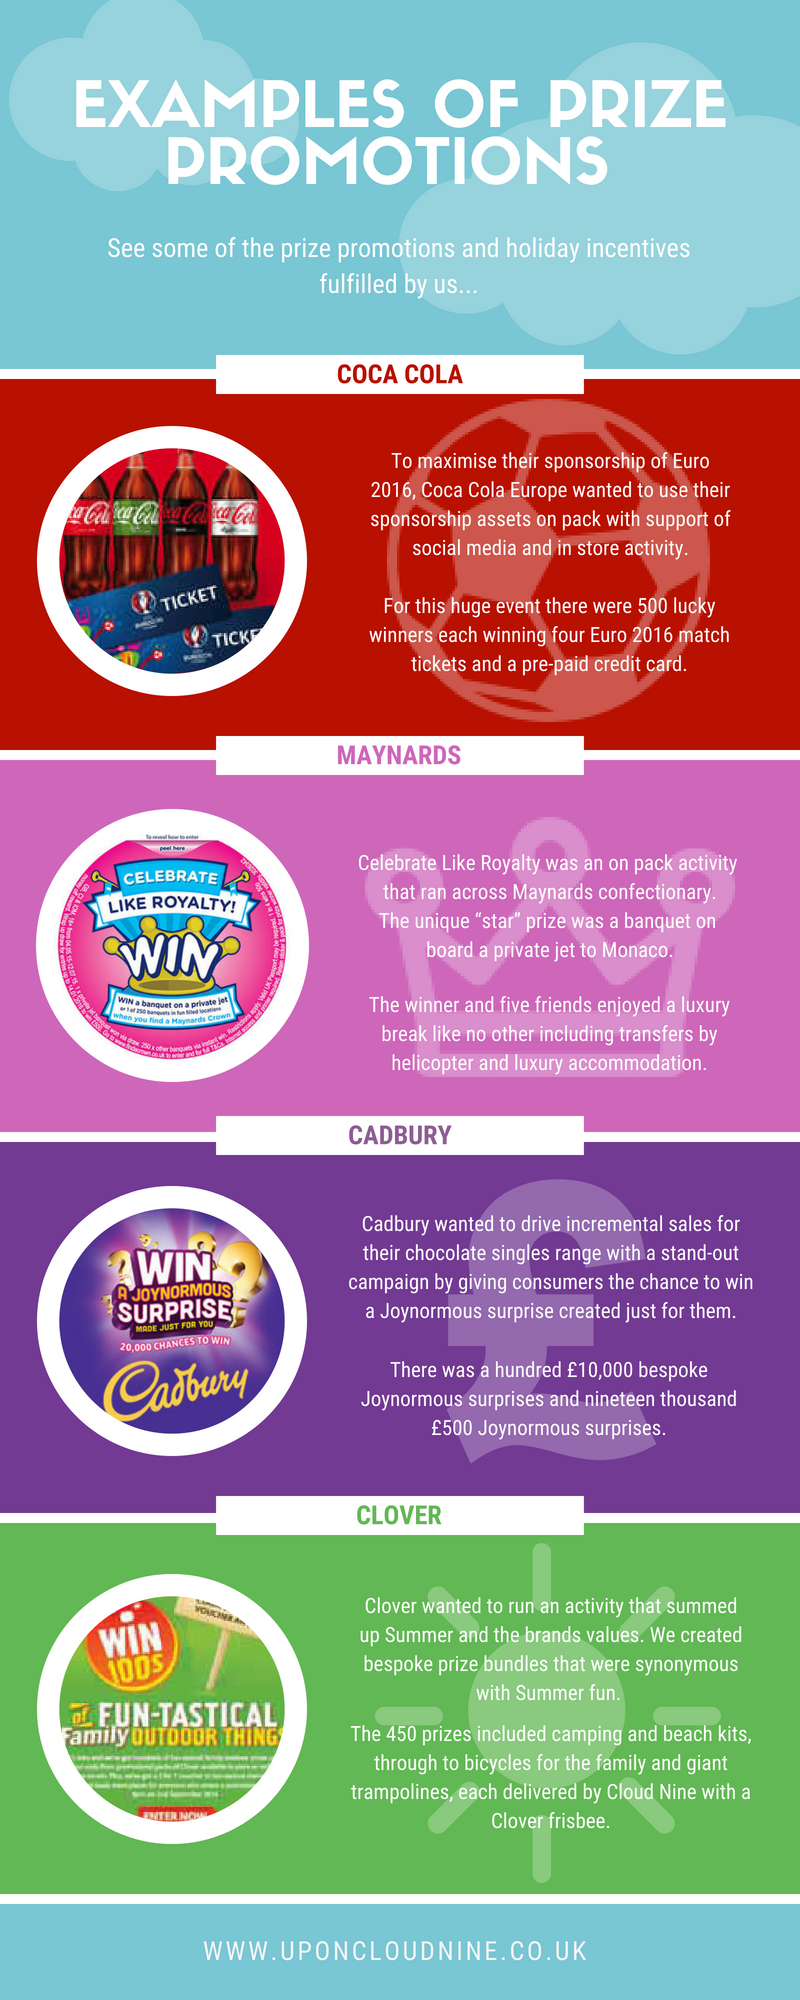 examples-of-travel-promotions-infographic-lkrllc